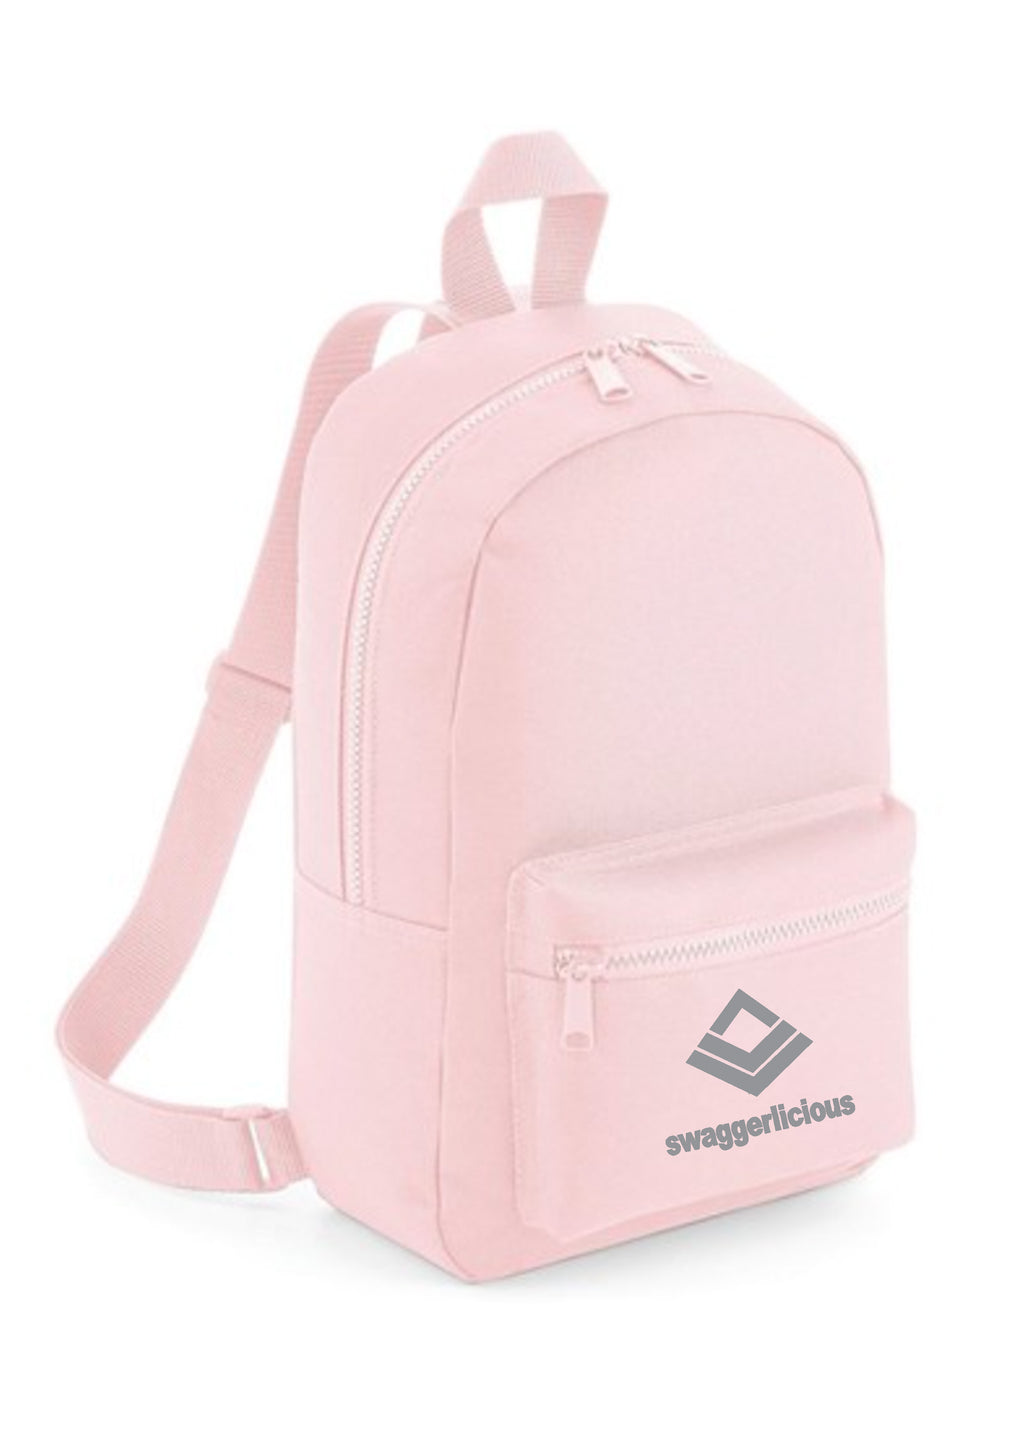 Swaggerlicious Classic Powder Pink Mini Backpack with Grey Logo - swaggerlicious-clothing.com